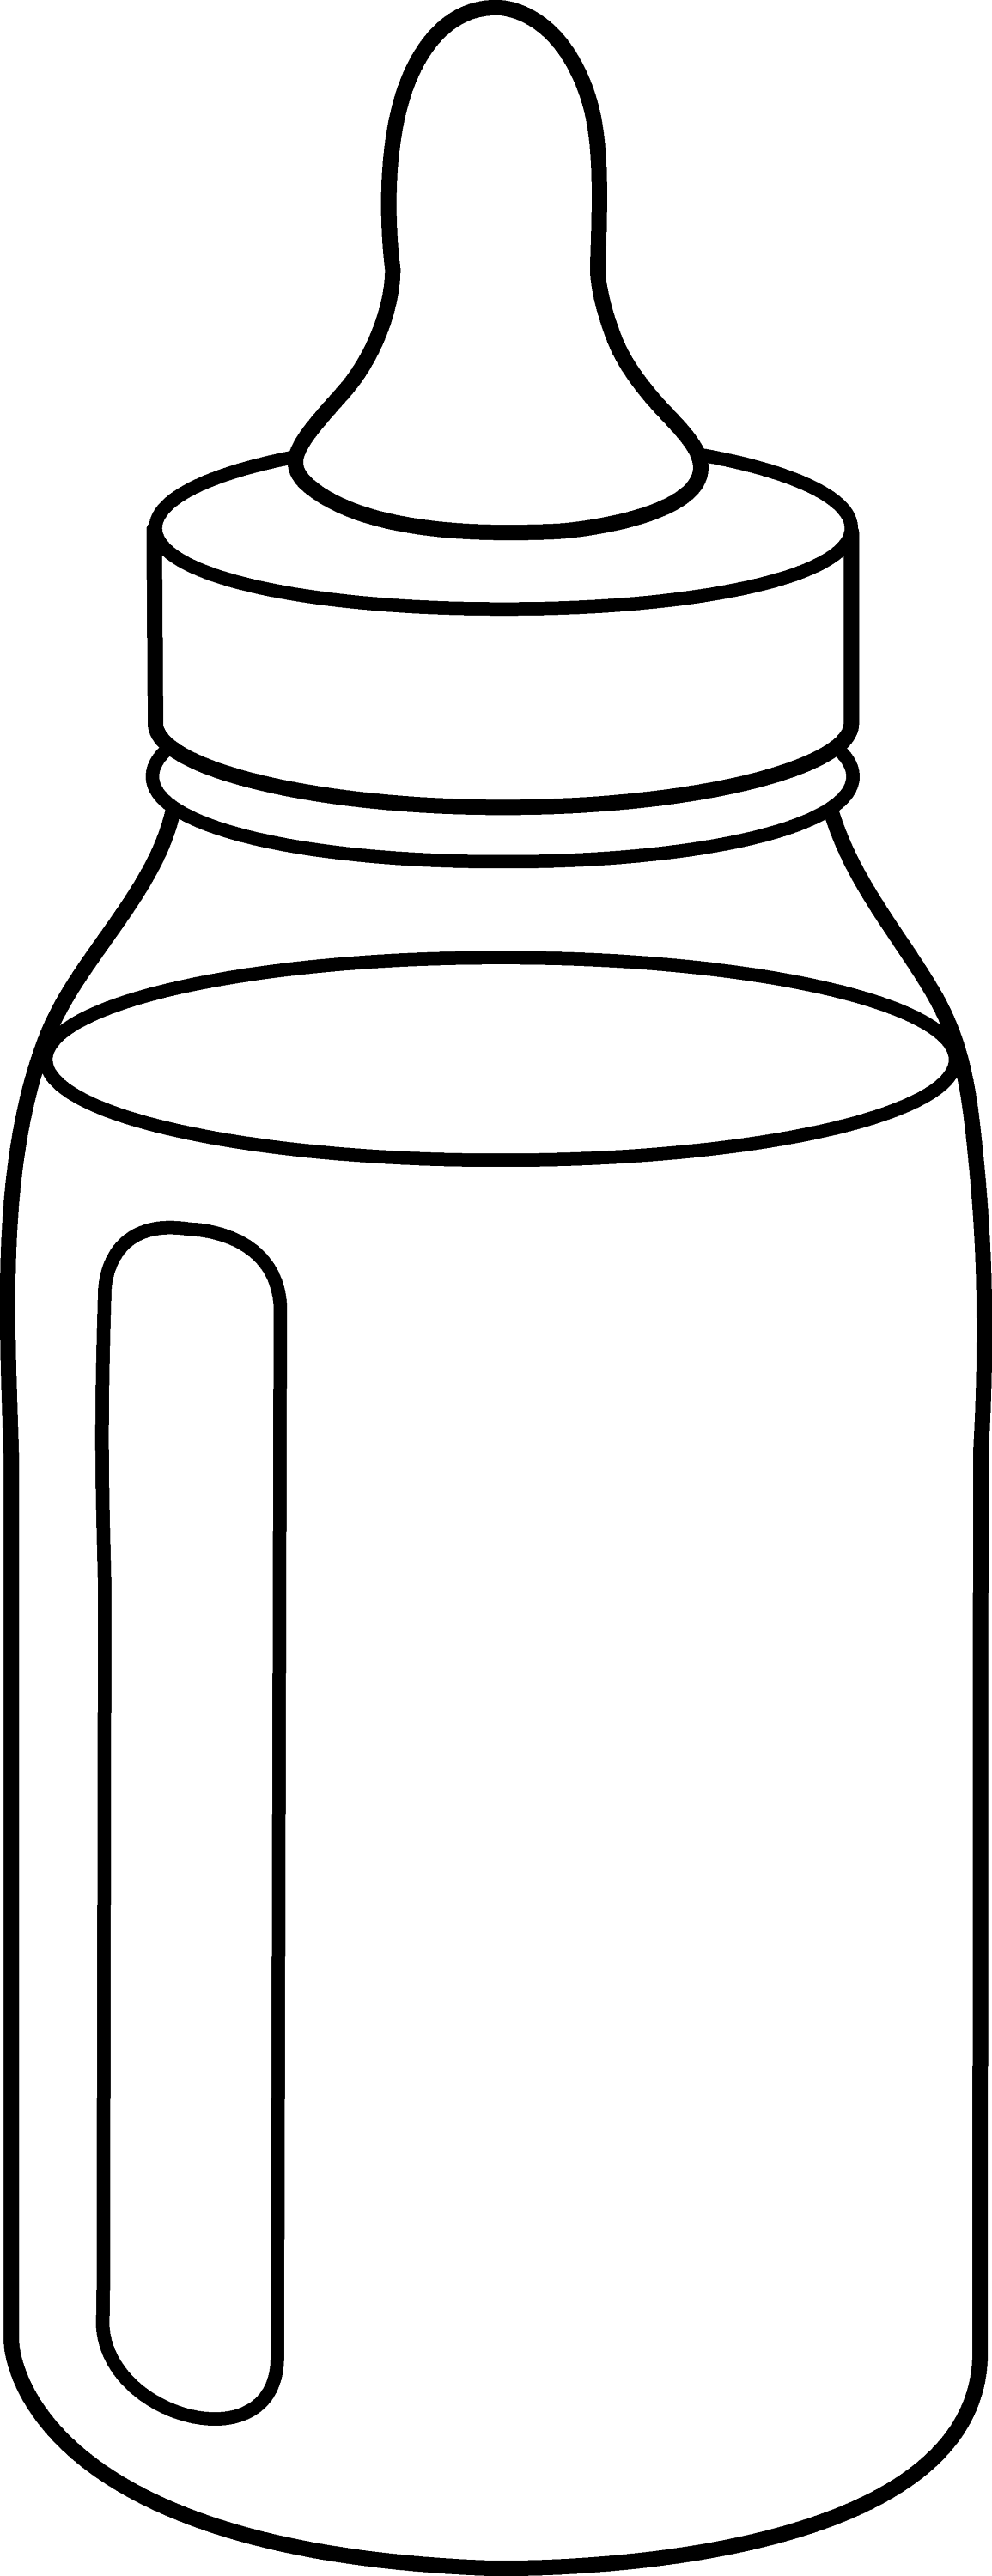 Baby Bottle Line Art